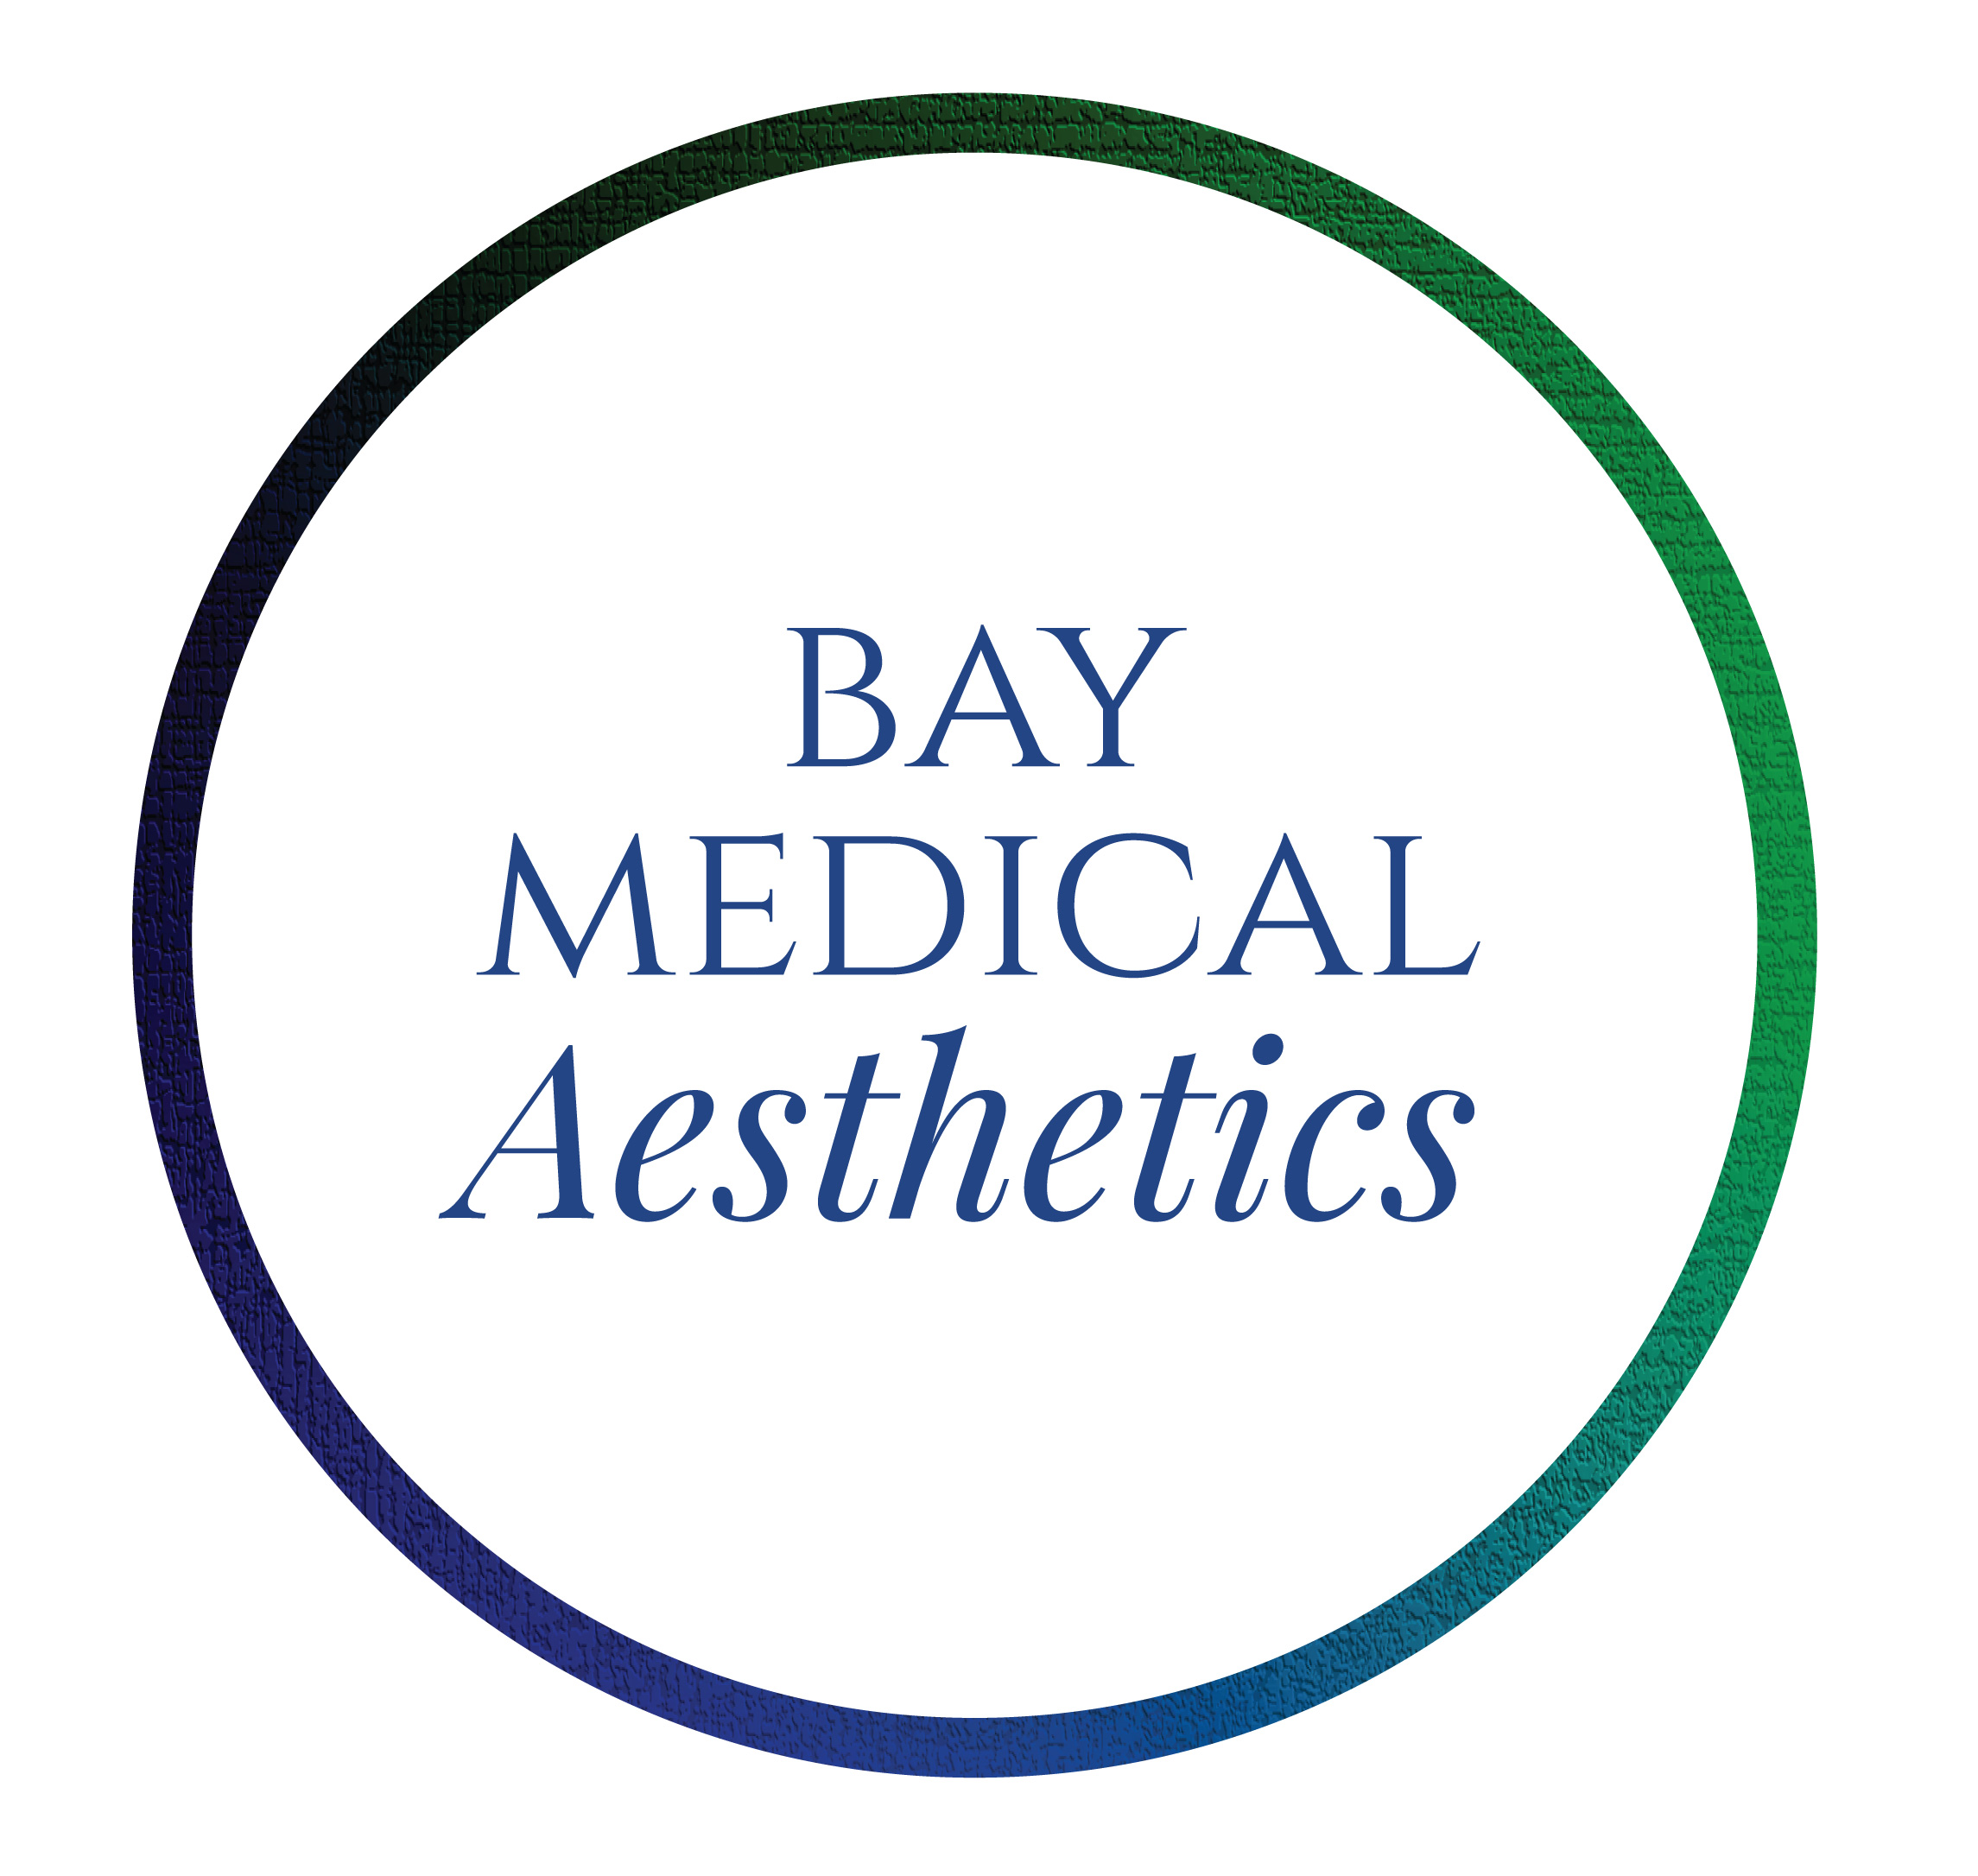 Bay Medical Aesthetics